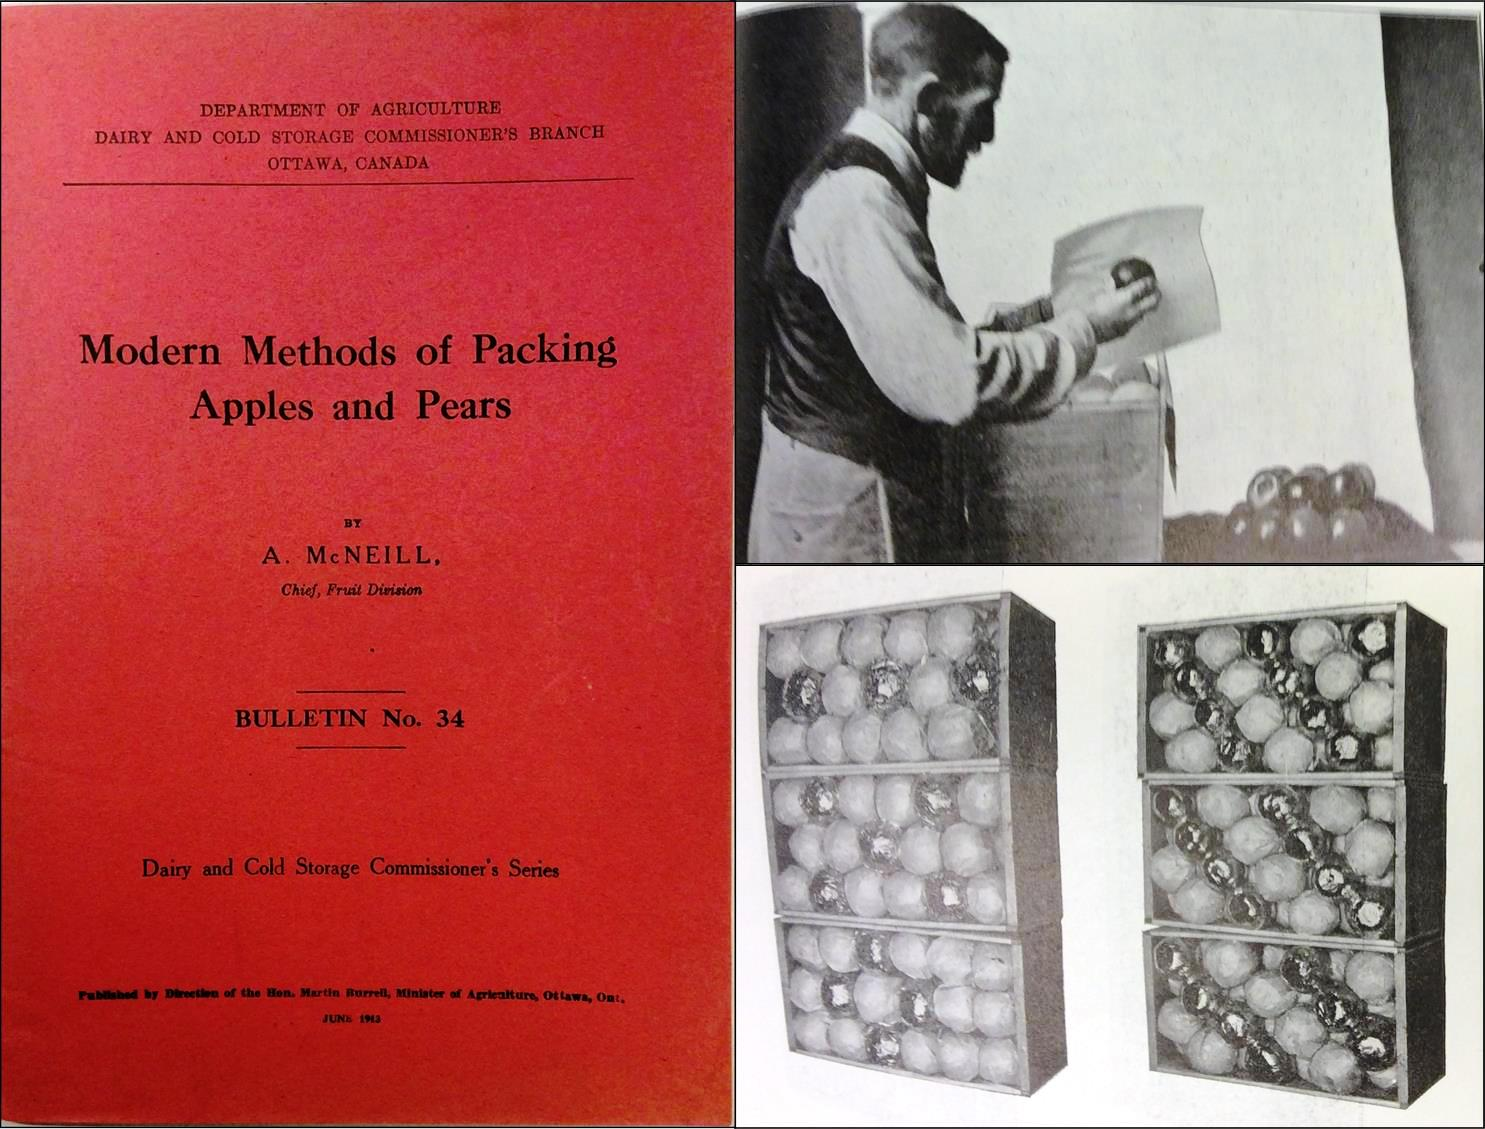 Three part photograph of a booklet. The left section shows the red booklet cover, titled Modern Methods of Packing Apples and Pears, by A. McNeill, Chief, Fruit Division. Published by Direction of the Hon. Martin Rurrell, Minister of Agriculture, Ottawa, Ont., June 1913. Black and white photo top right shows a man wrapping an apple in tissue. Black and white photo lower right shows six packed apple boxes with apples packed in different patterns.